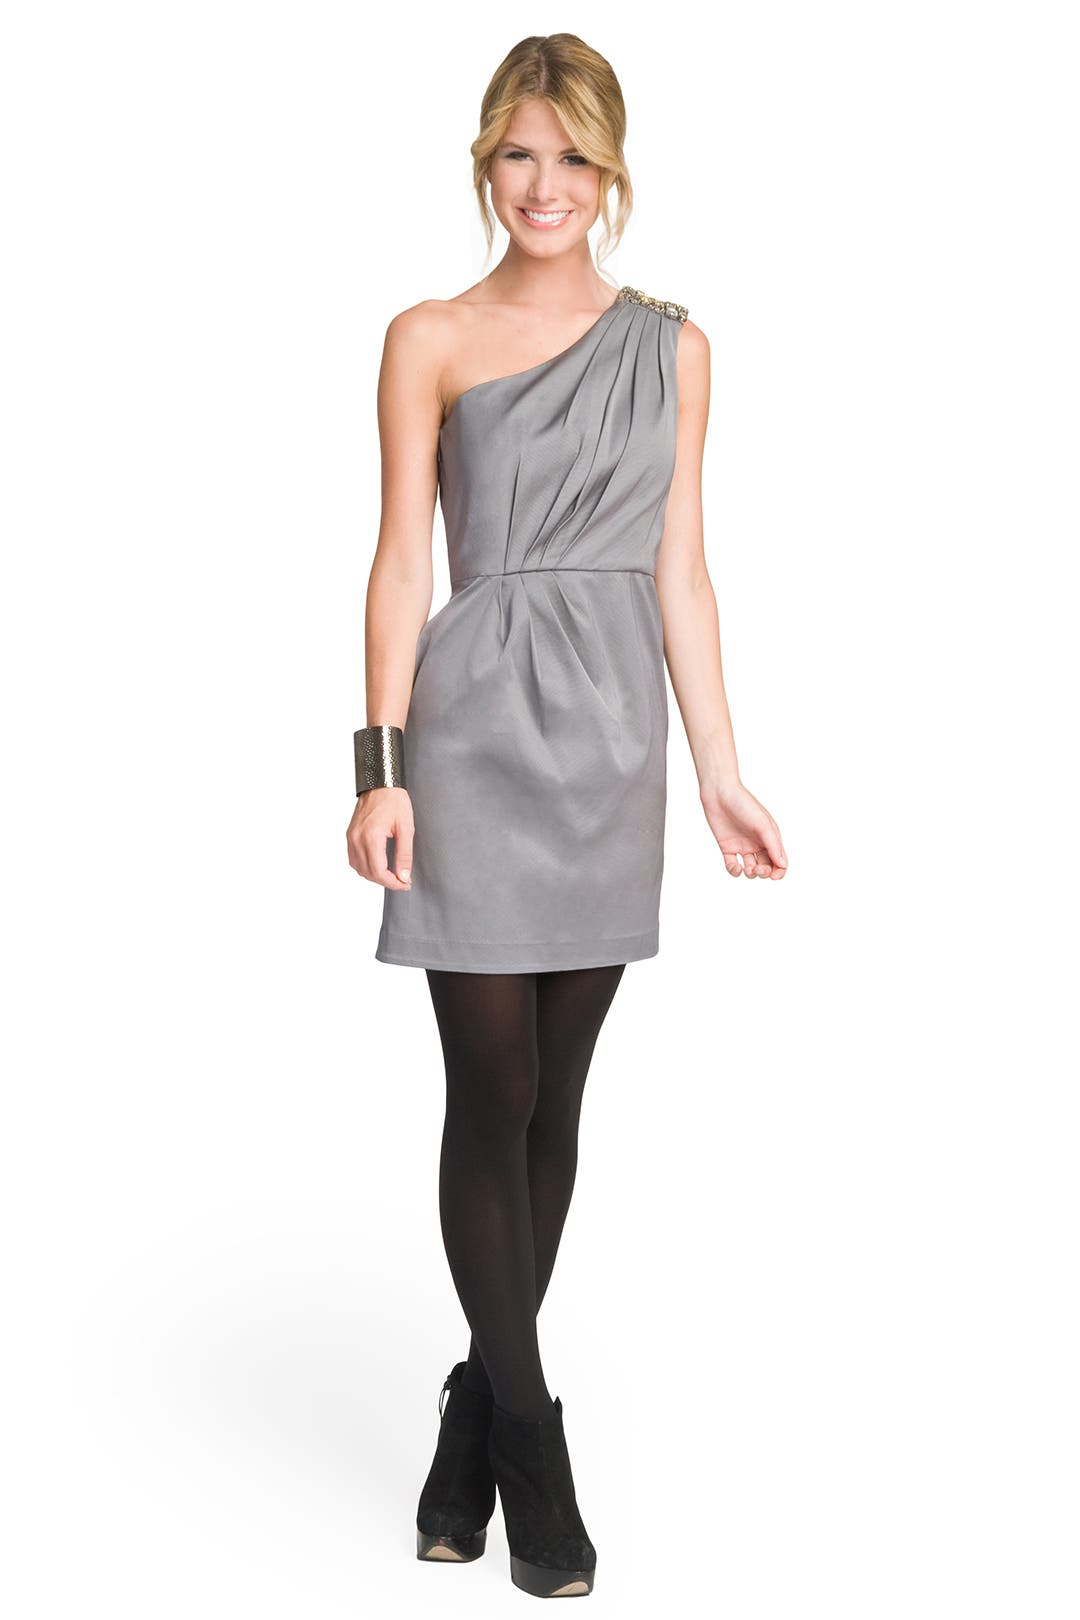 Silver Sensation One Shoulder Dress by Shoshanna